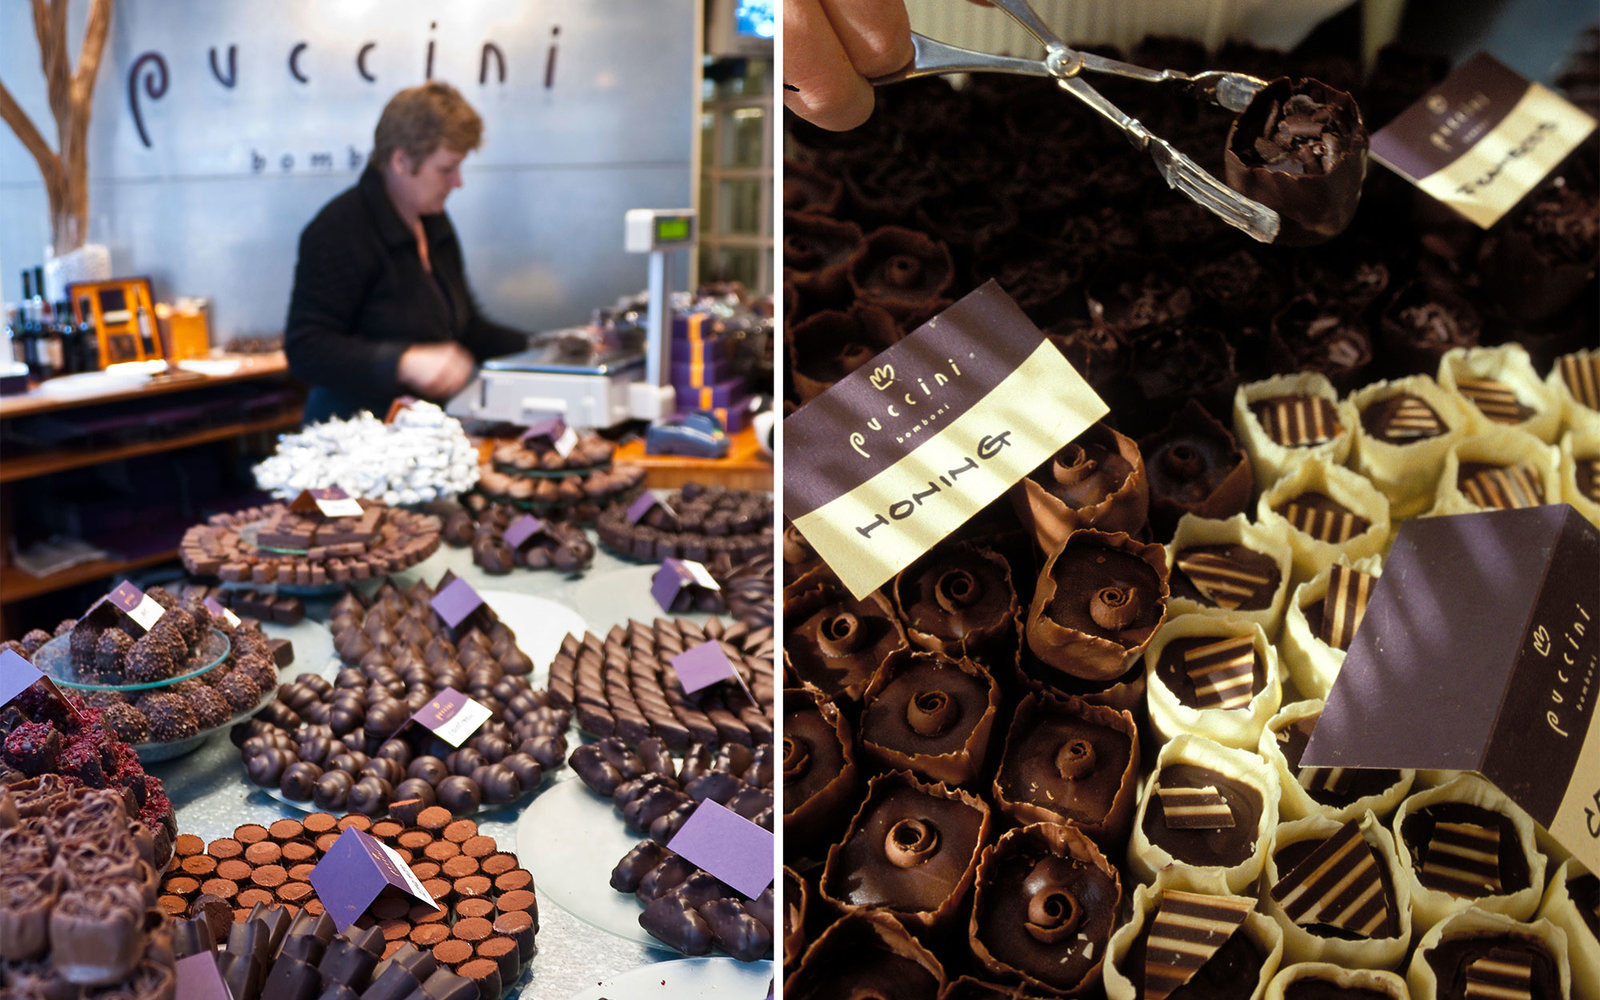 EYFCGW Puccini Bomboni, Chocolate Shop, Staalstraat 17, Amsterdsam, Netherlands.